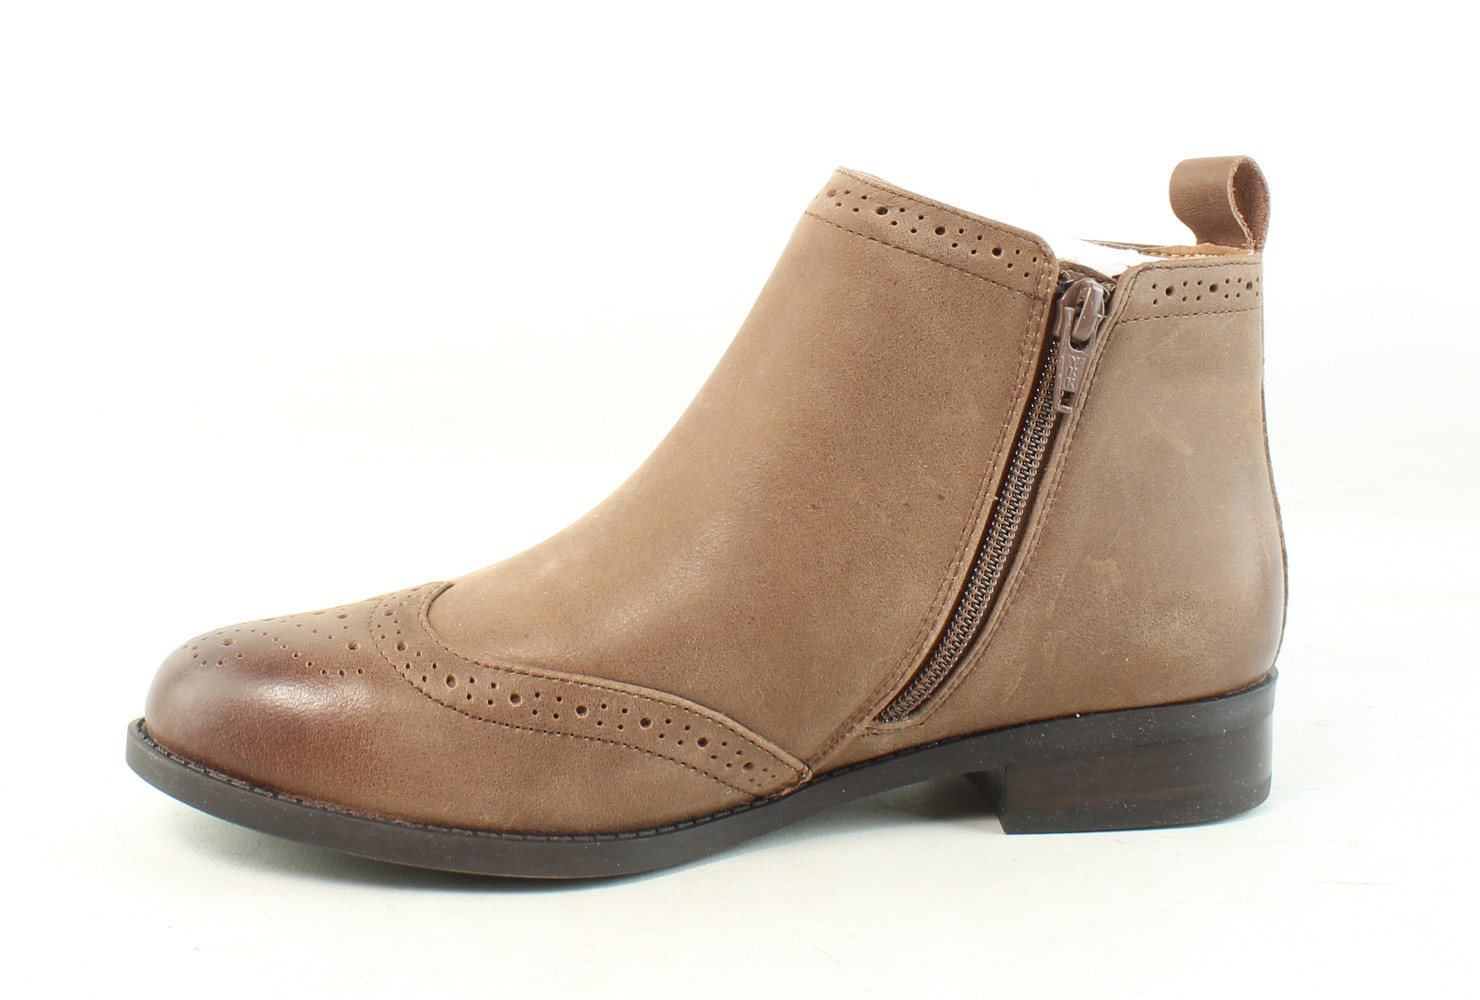 Vionic-Womens-Country-Sawyer-Chelsea-Boots thumbnail 9